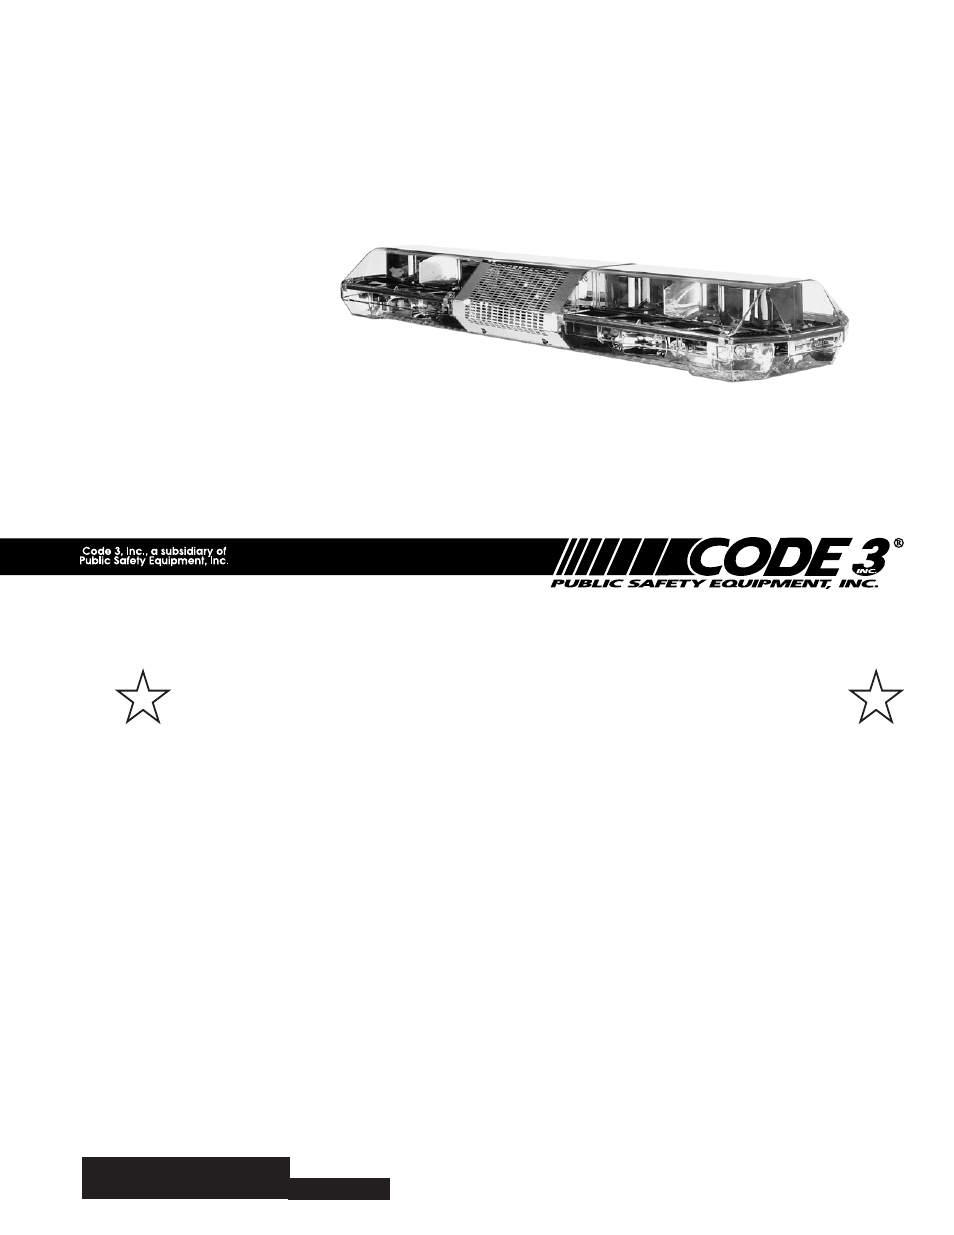 Code 3 Light Bar Wiring Diagram Opinions About Land Rover Mx 7000 User Manual 32 Pages 360